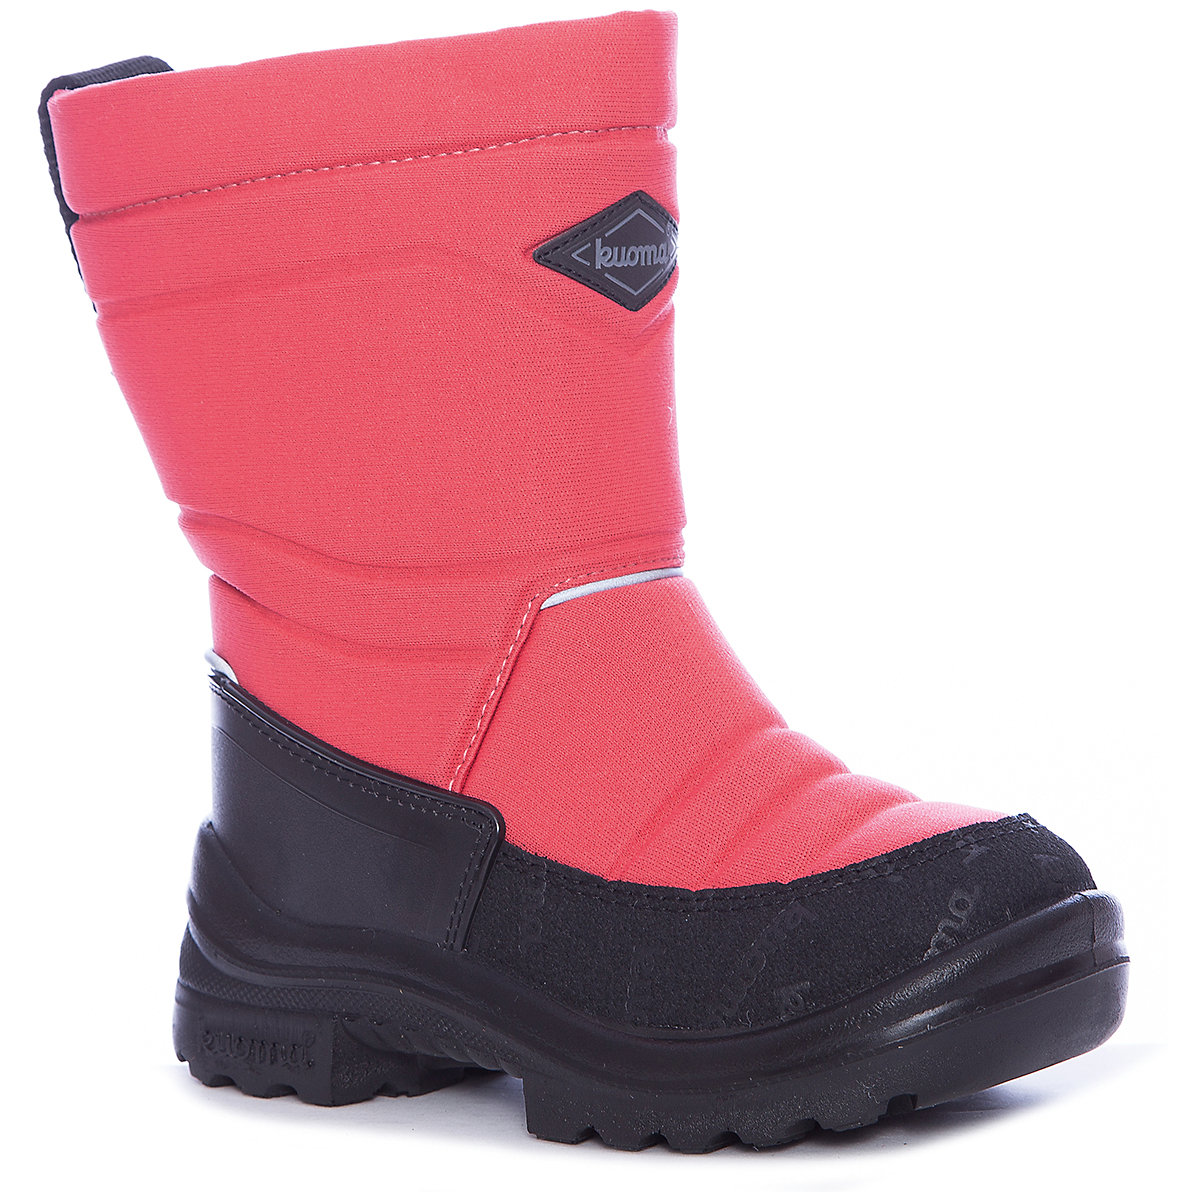 Boots KUOMA for girls 7047173 Valenki Uggi Winter shoes Children Kids